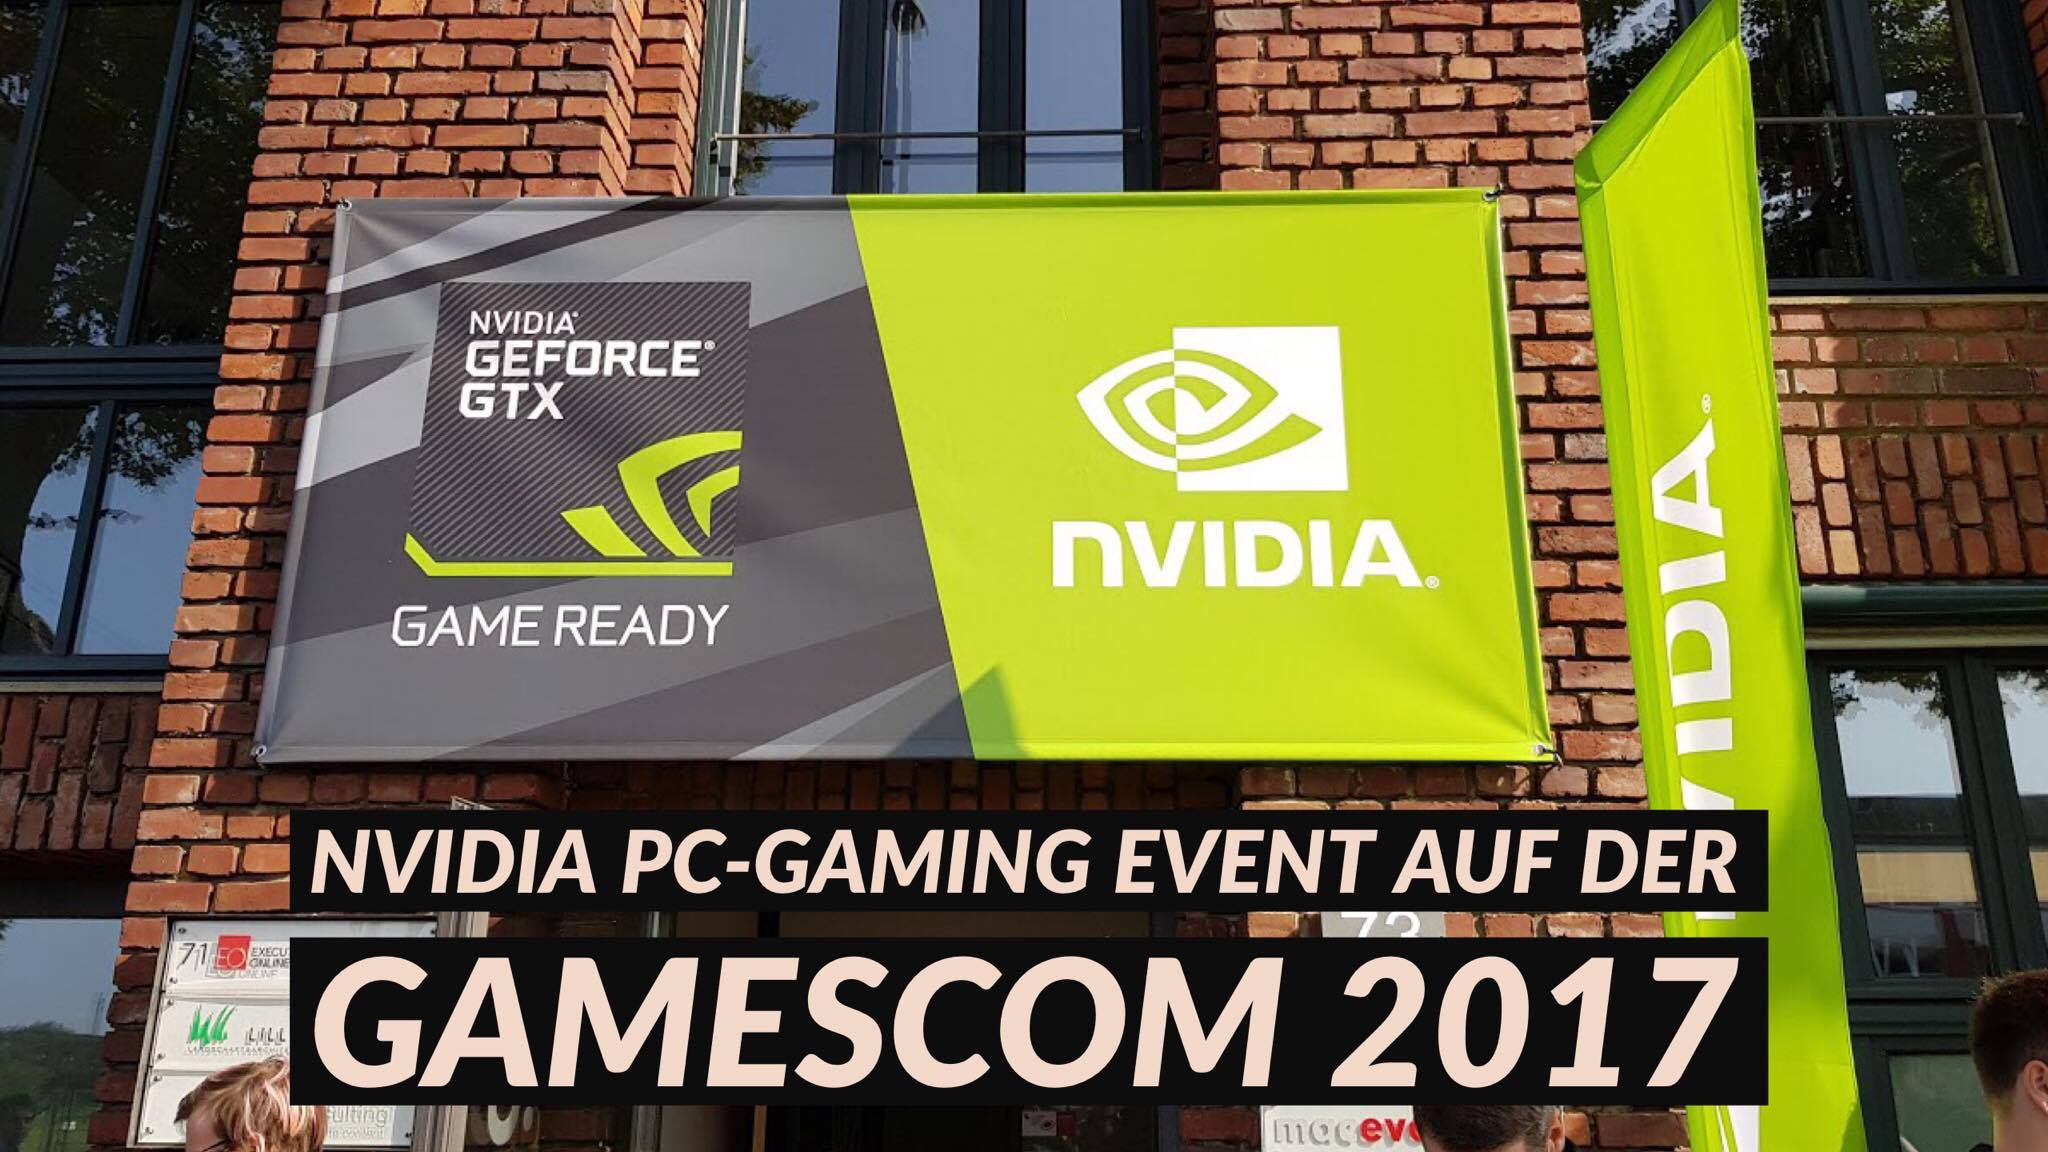 NVIDIA-PC-Gaming-EVENT-auf-der-gamescom-2017-nat-games-special